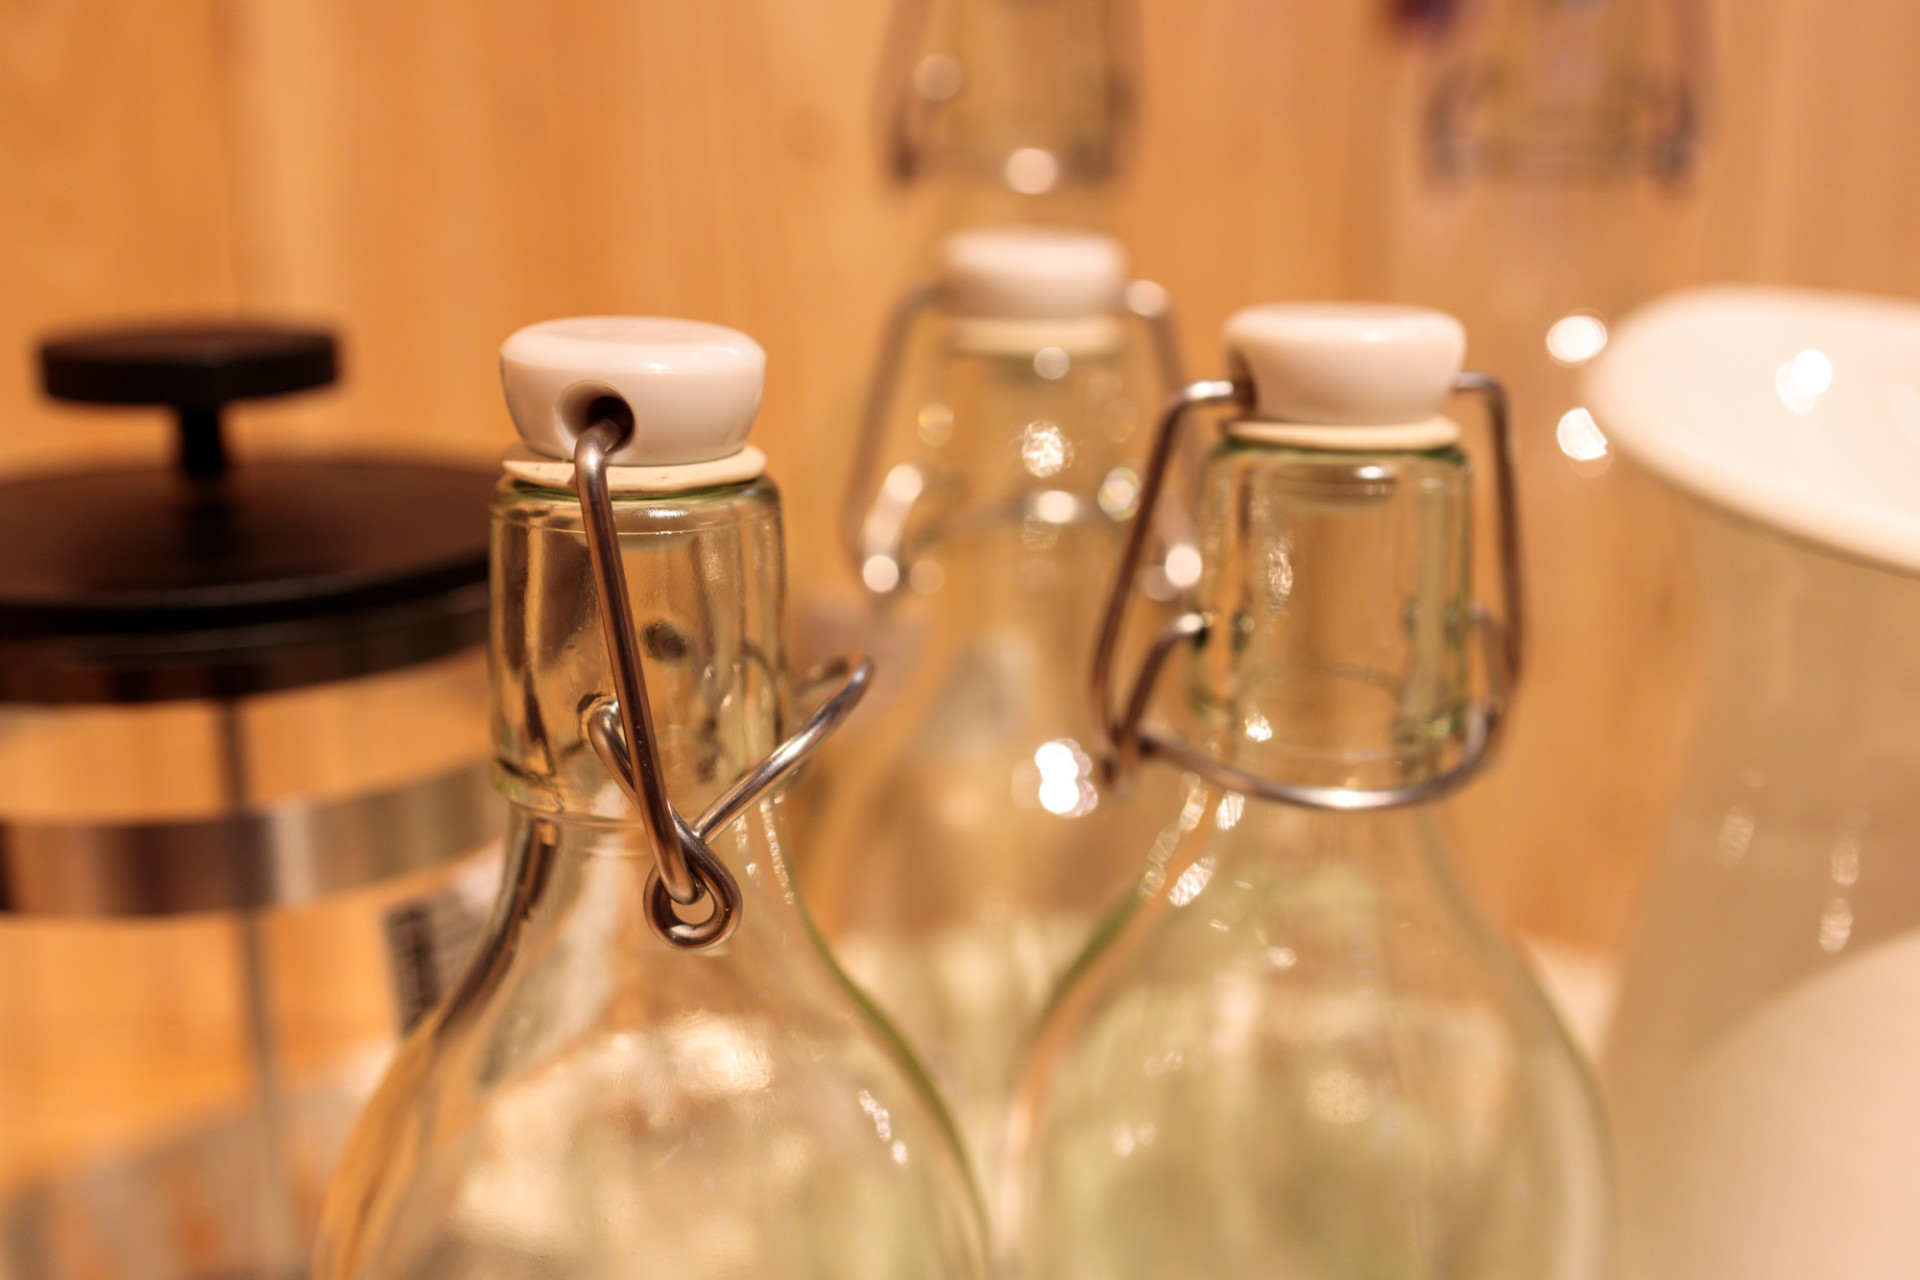 Glass bottles in the kitchen